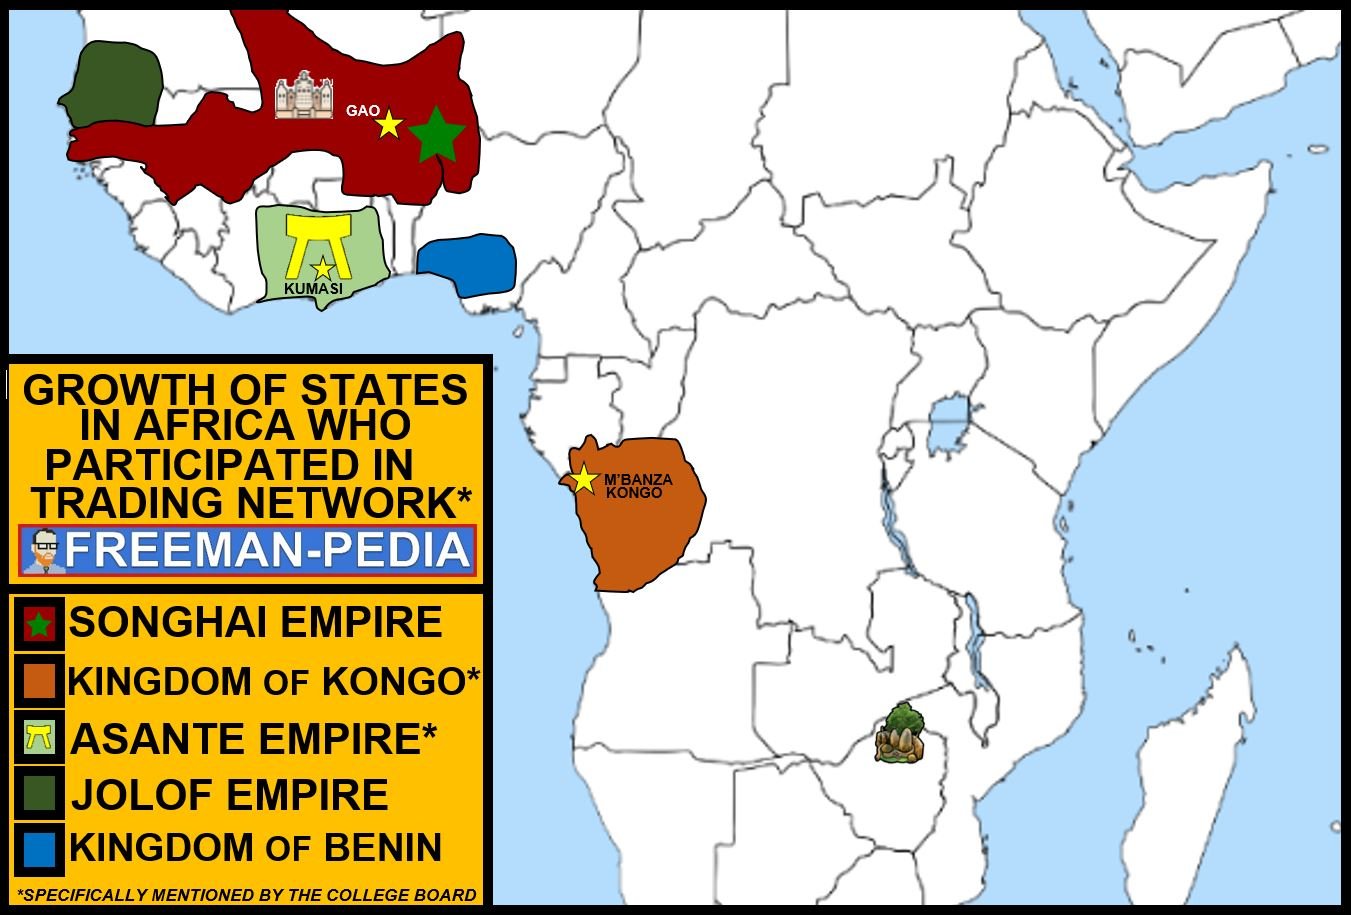 expansion of maritime trading networks fostered the growth of states in Africa AP WORLD MODERN FREEMANPEDIA.JPG